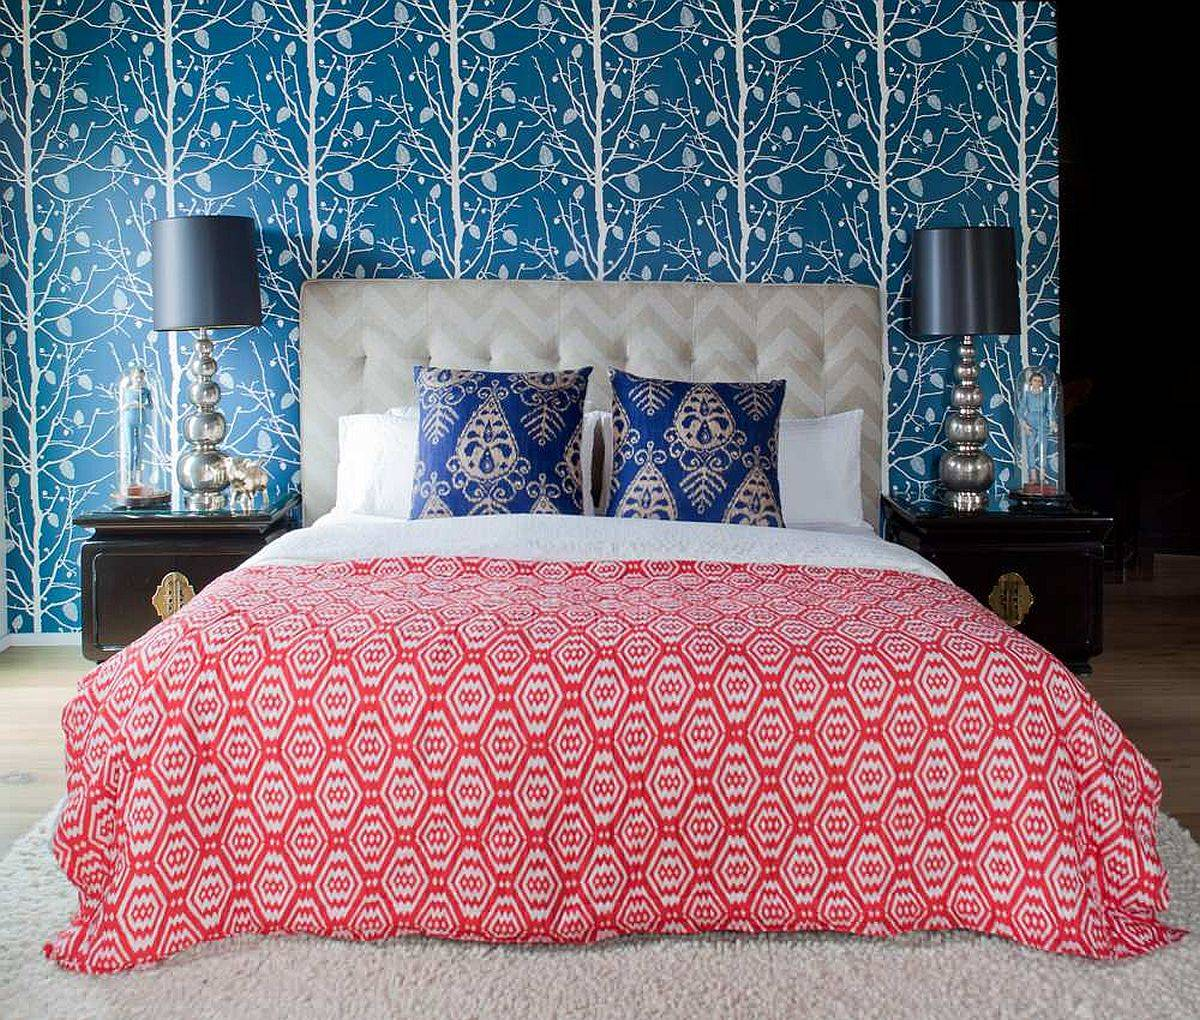 Colorful-bedding-backdrop-and-pillows-drive-out-any-sense-of-dullness-in-this-small-contemporary-bedroom-46233